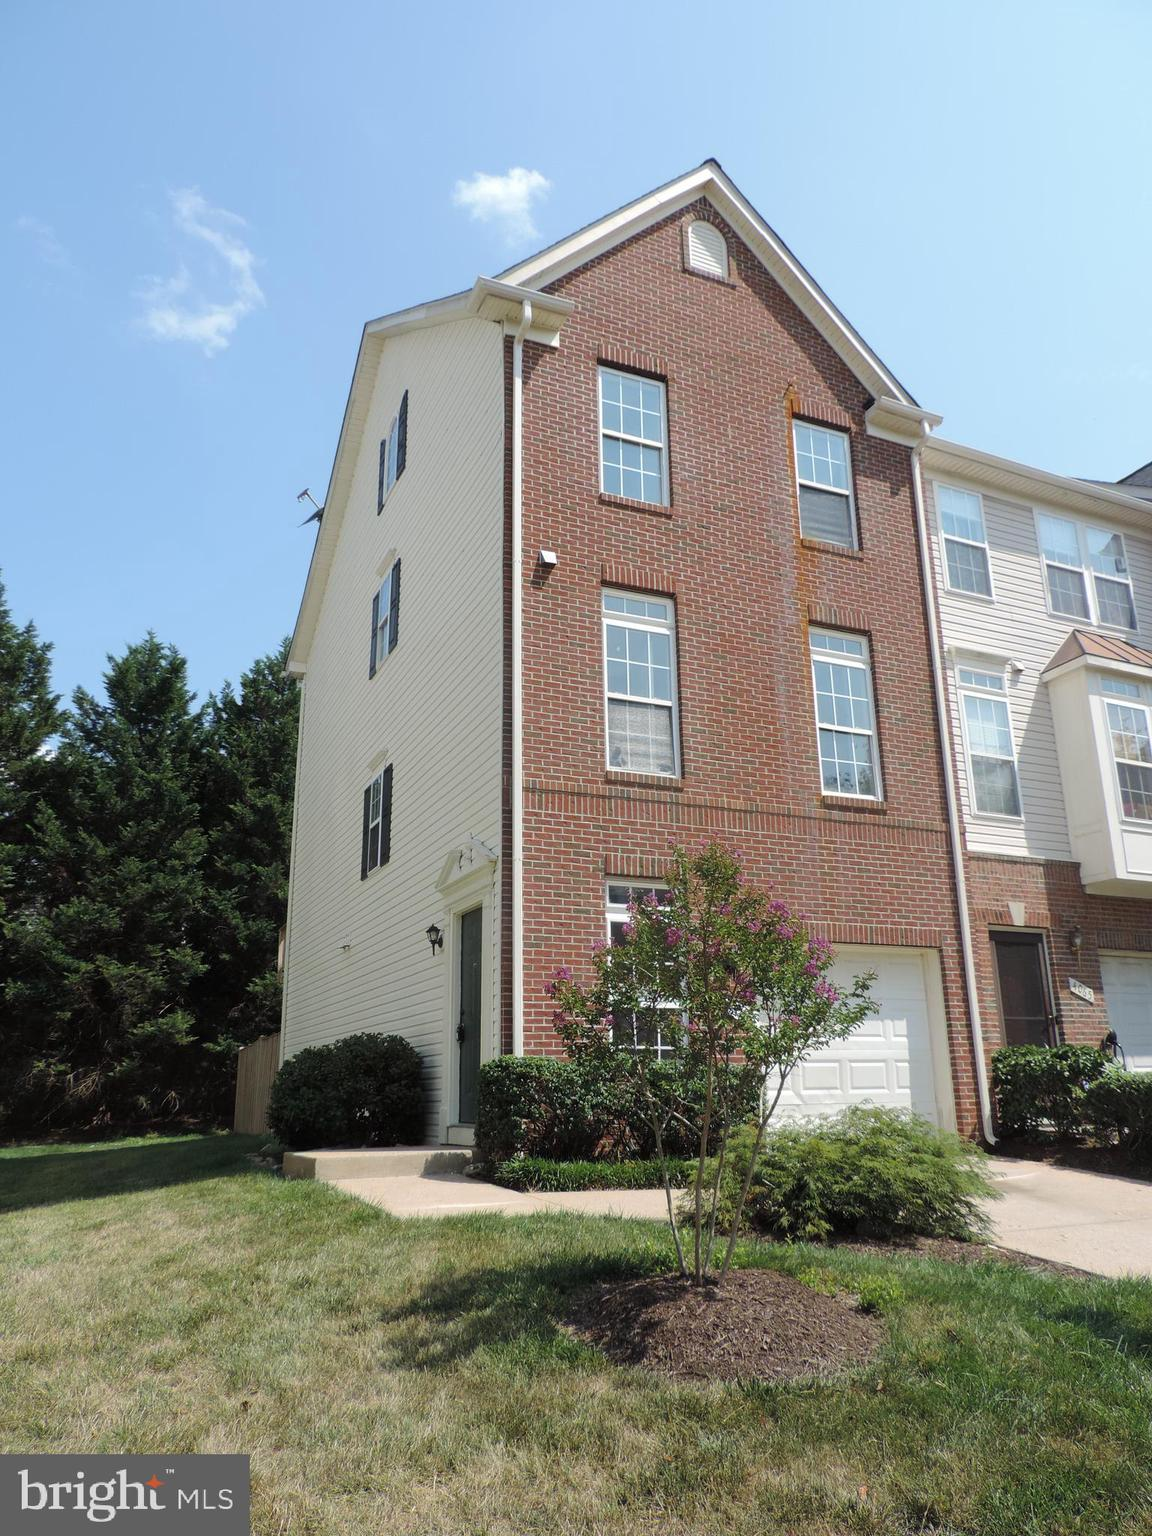 HUGE PRICE REDUCTION! RARE 4 Level Brick Front End Unit Townhouse with 3 Primary Bedrooms w/ Full Ba